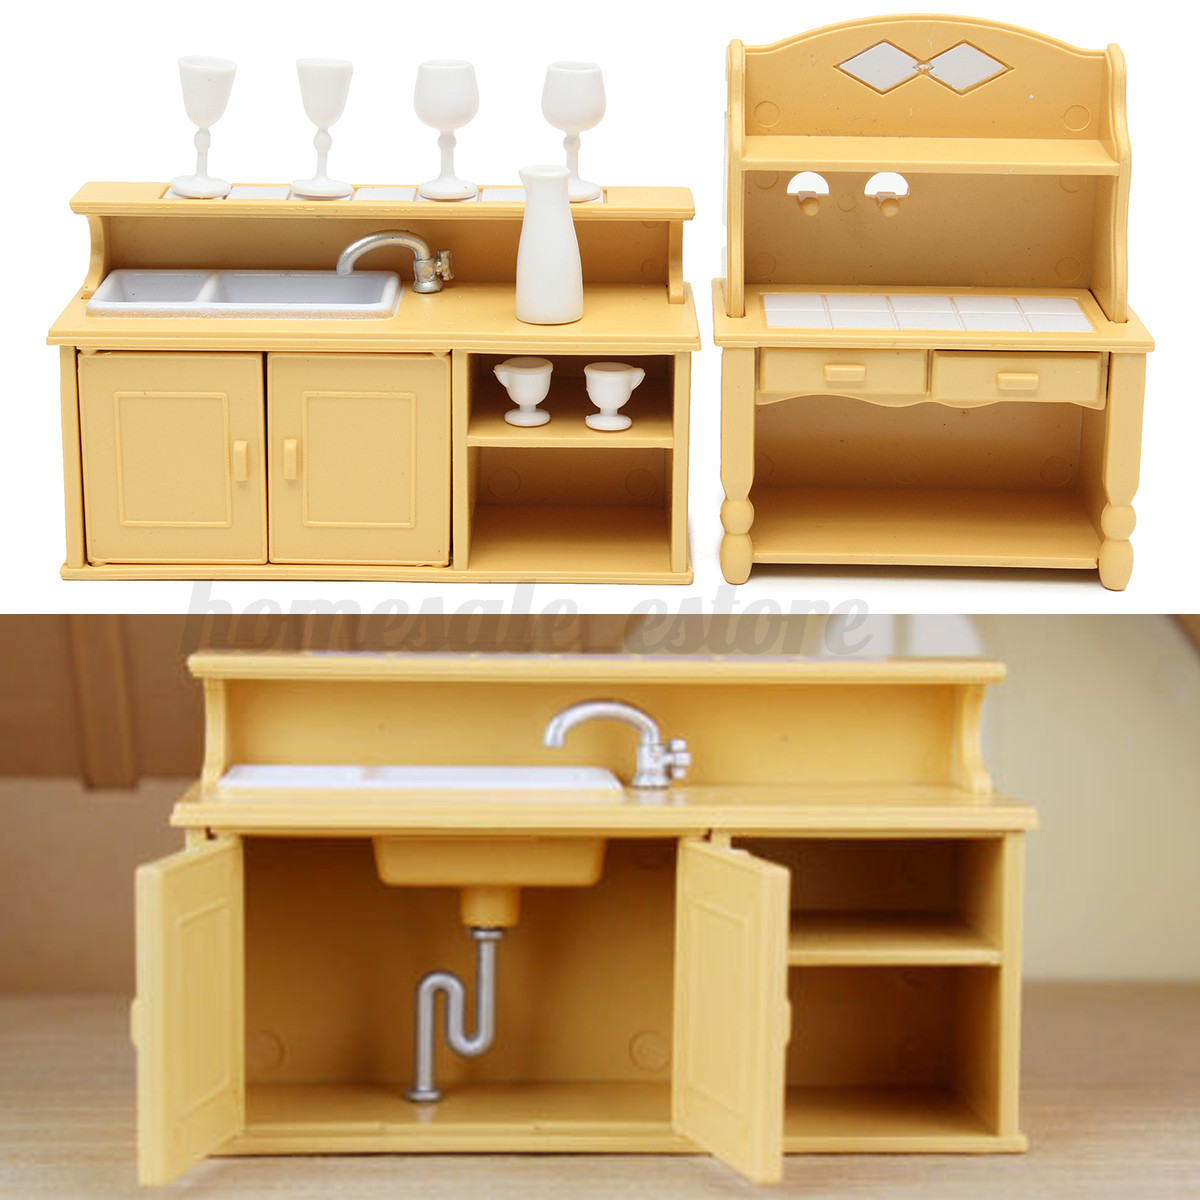 Cabinets Plastic Kitchen Miniature Dollhouse Furniture Dining Set Room Kids Toy Ebay